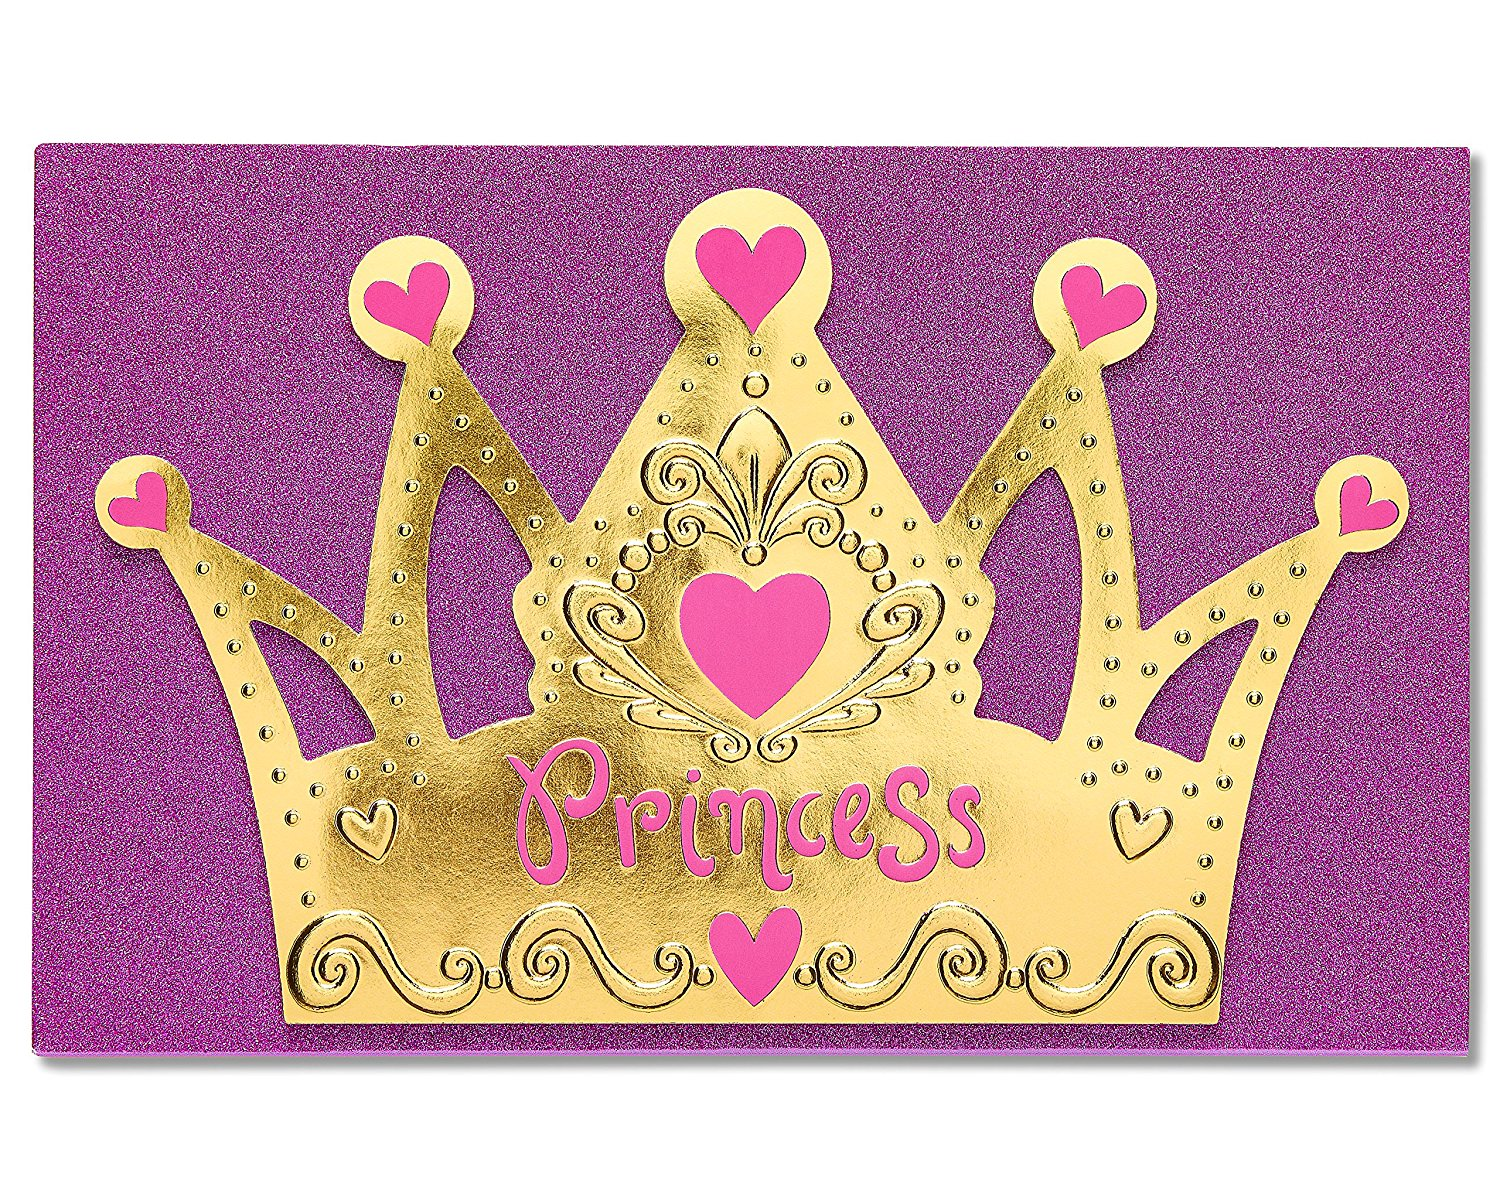 Buy american greetings card cardstock paper princess crown birthday american greetings card cardstock paper princess crown birthday for girl 5801295 m4hsunfo